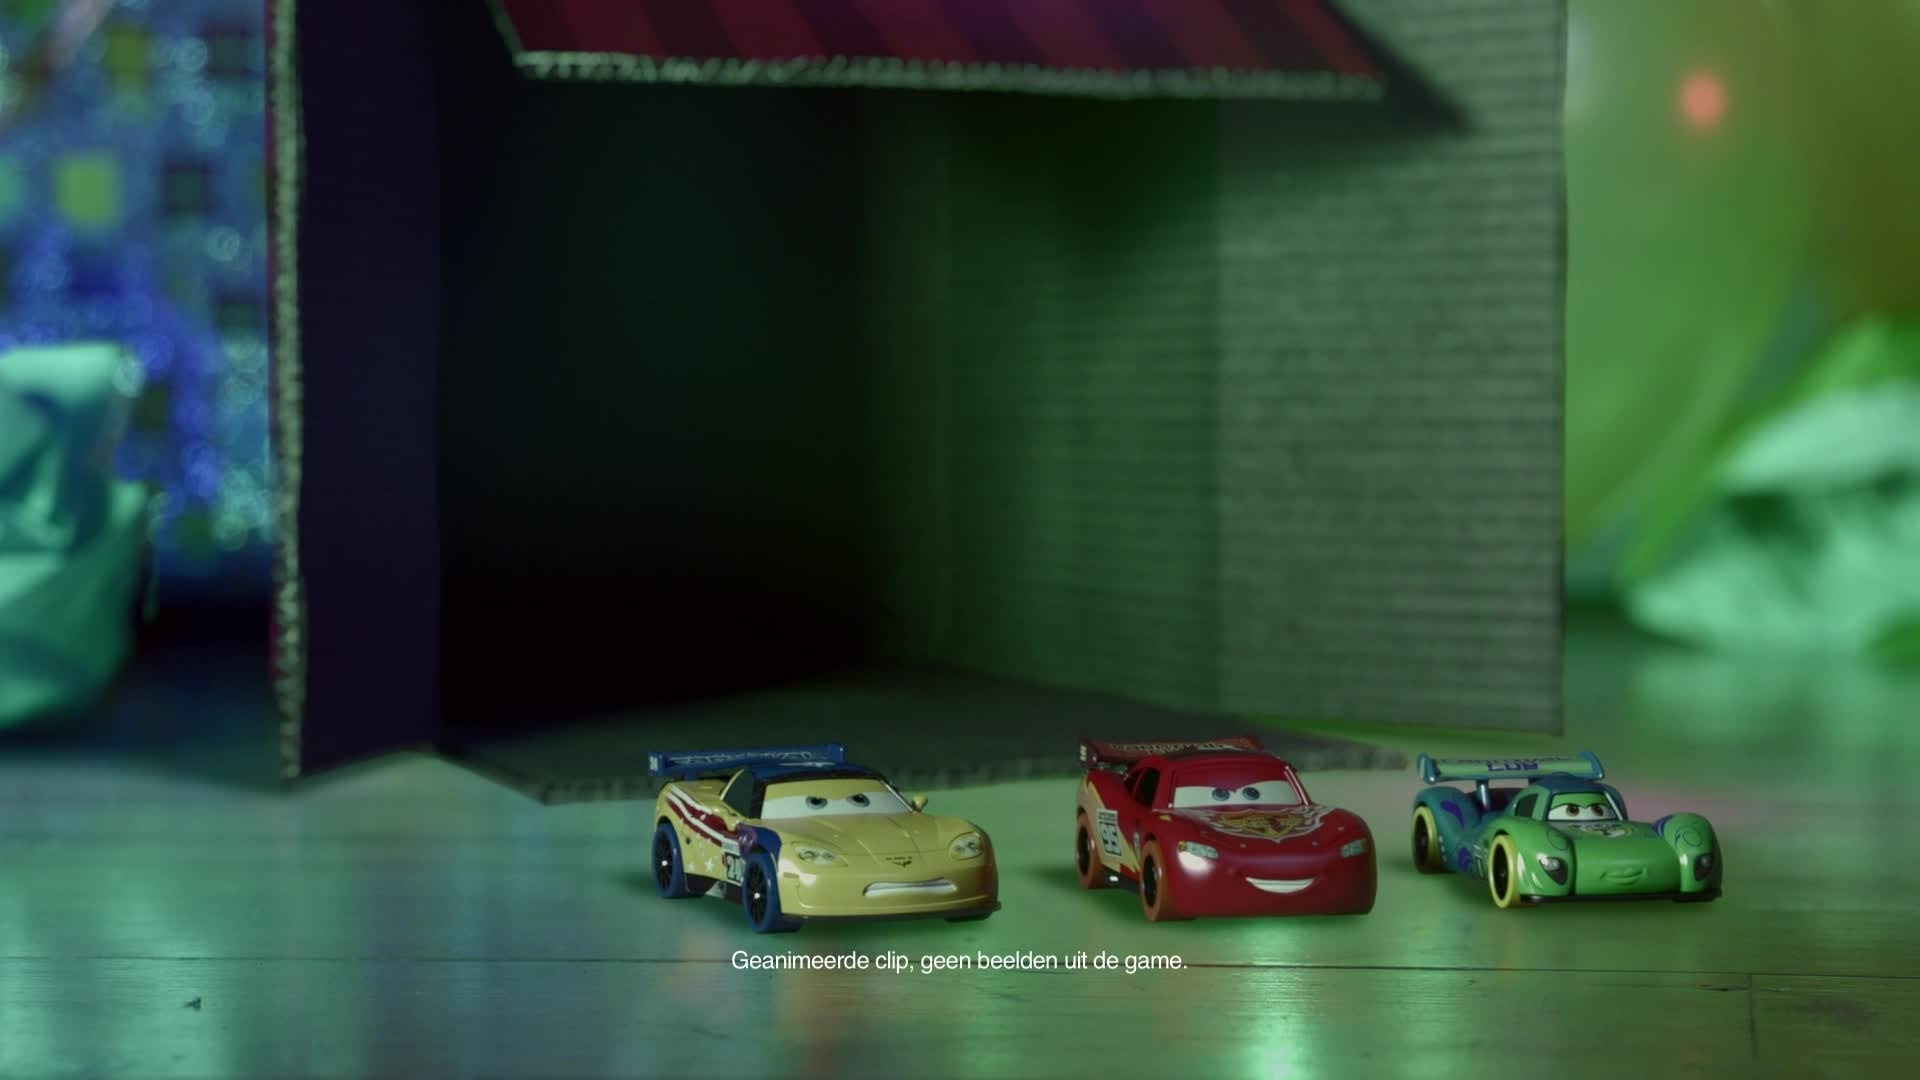 Cars Daredevil Garage - Testrit in de Woonkamer